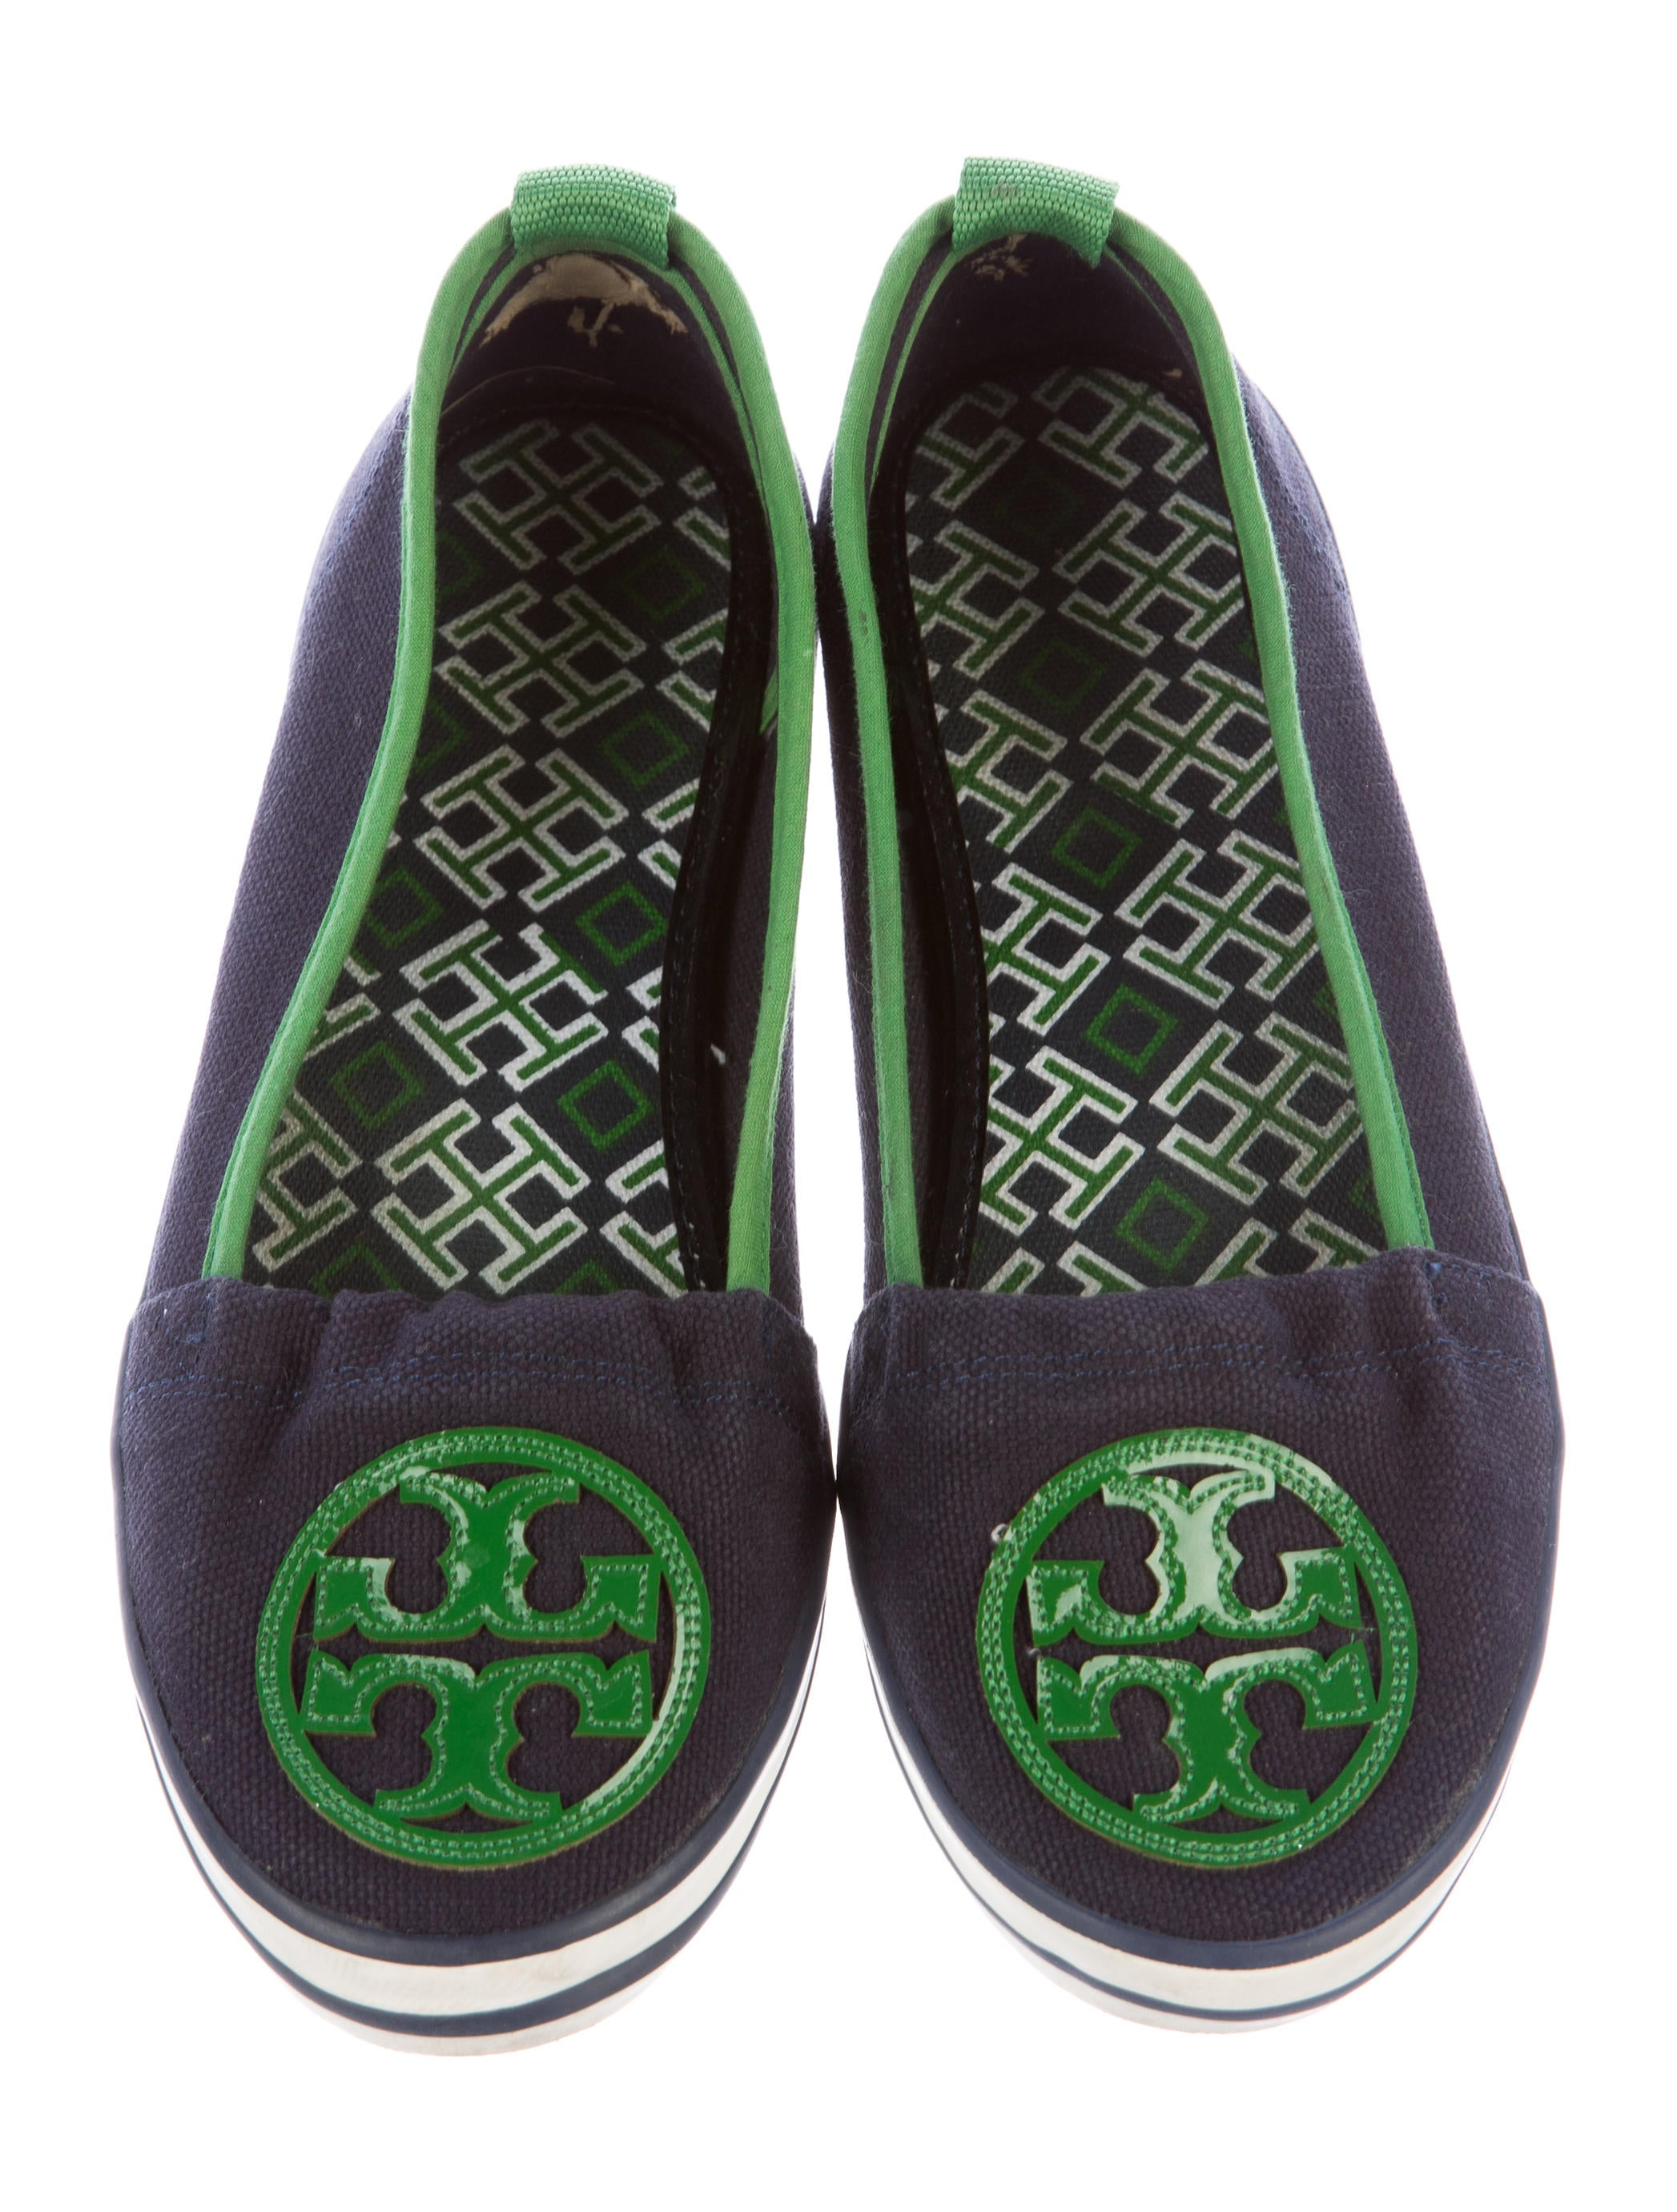 burch canvas logo flats shoes wto90214 the realreal